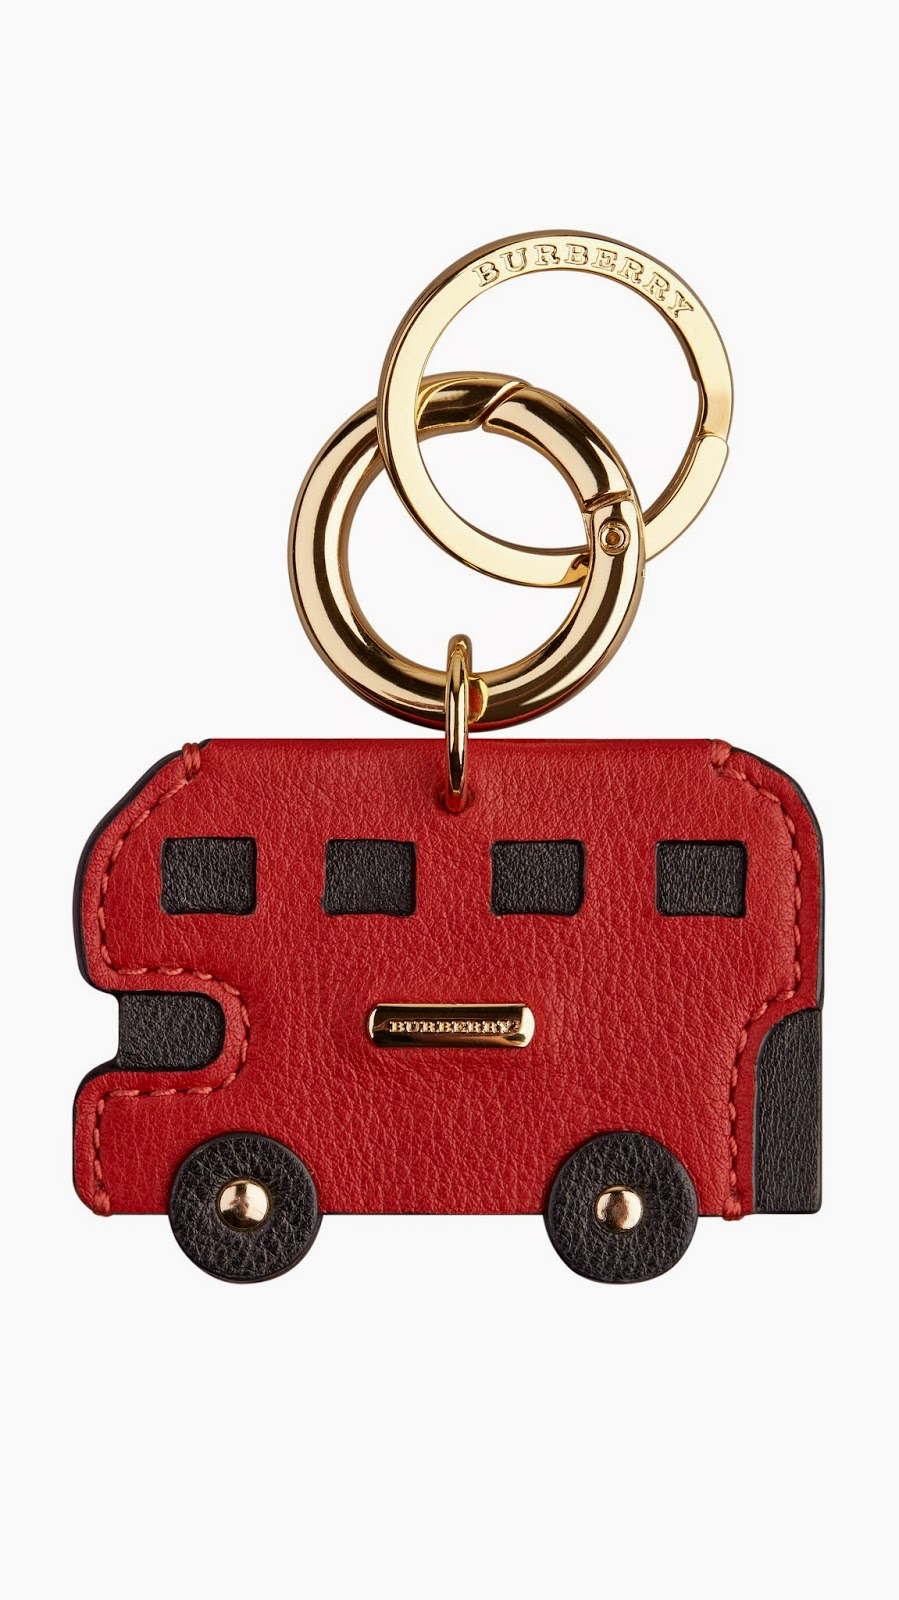 Burberry's British-themed Key Fobs